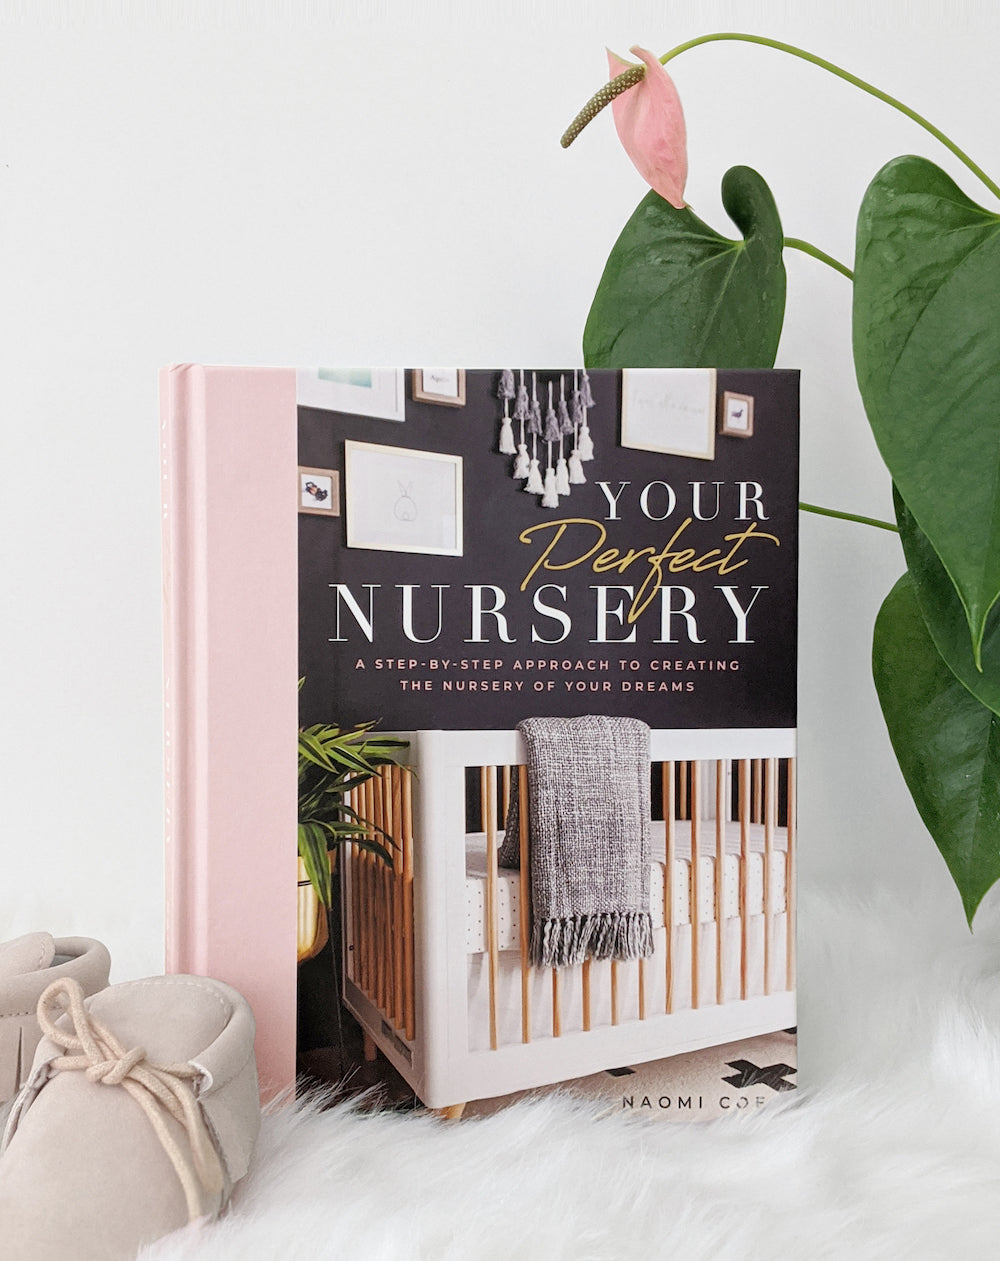 Your perfect nursery book